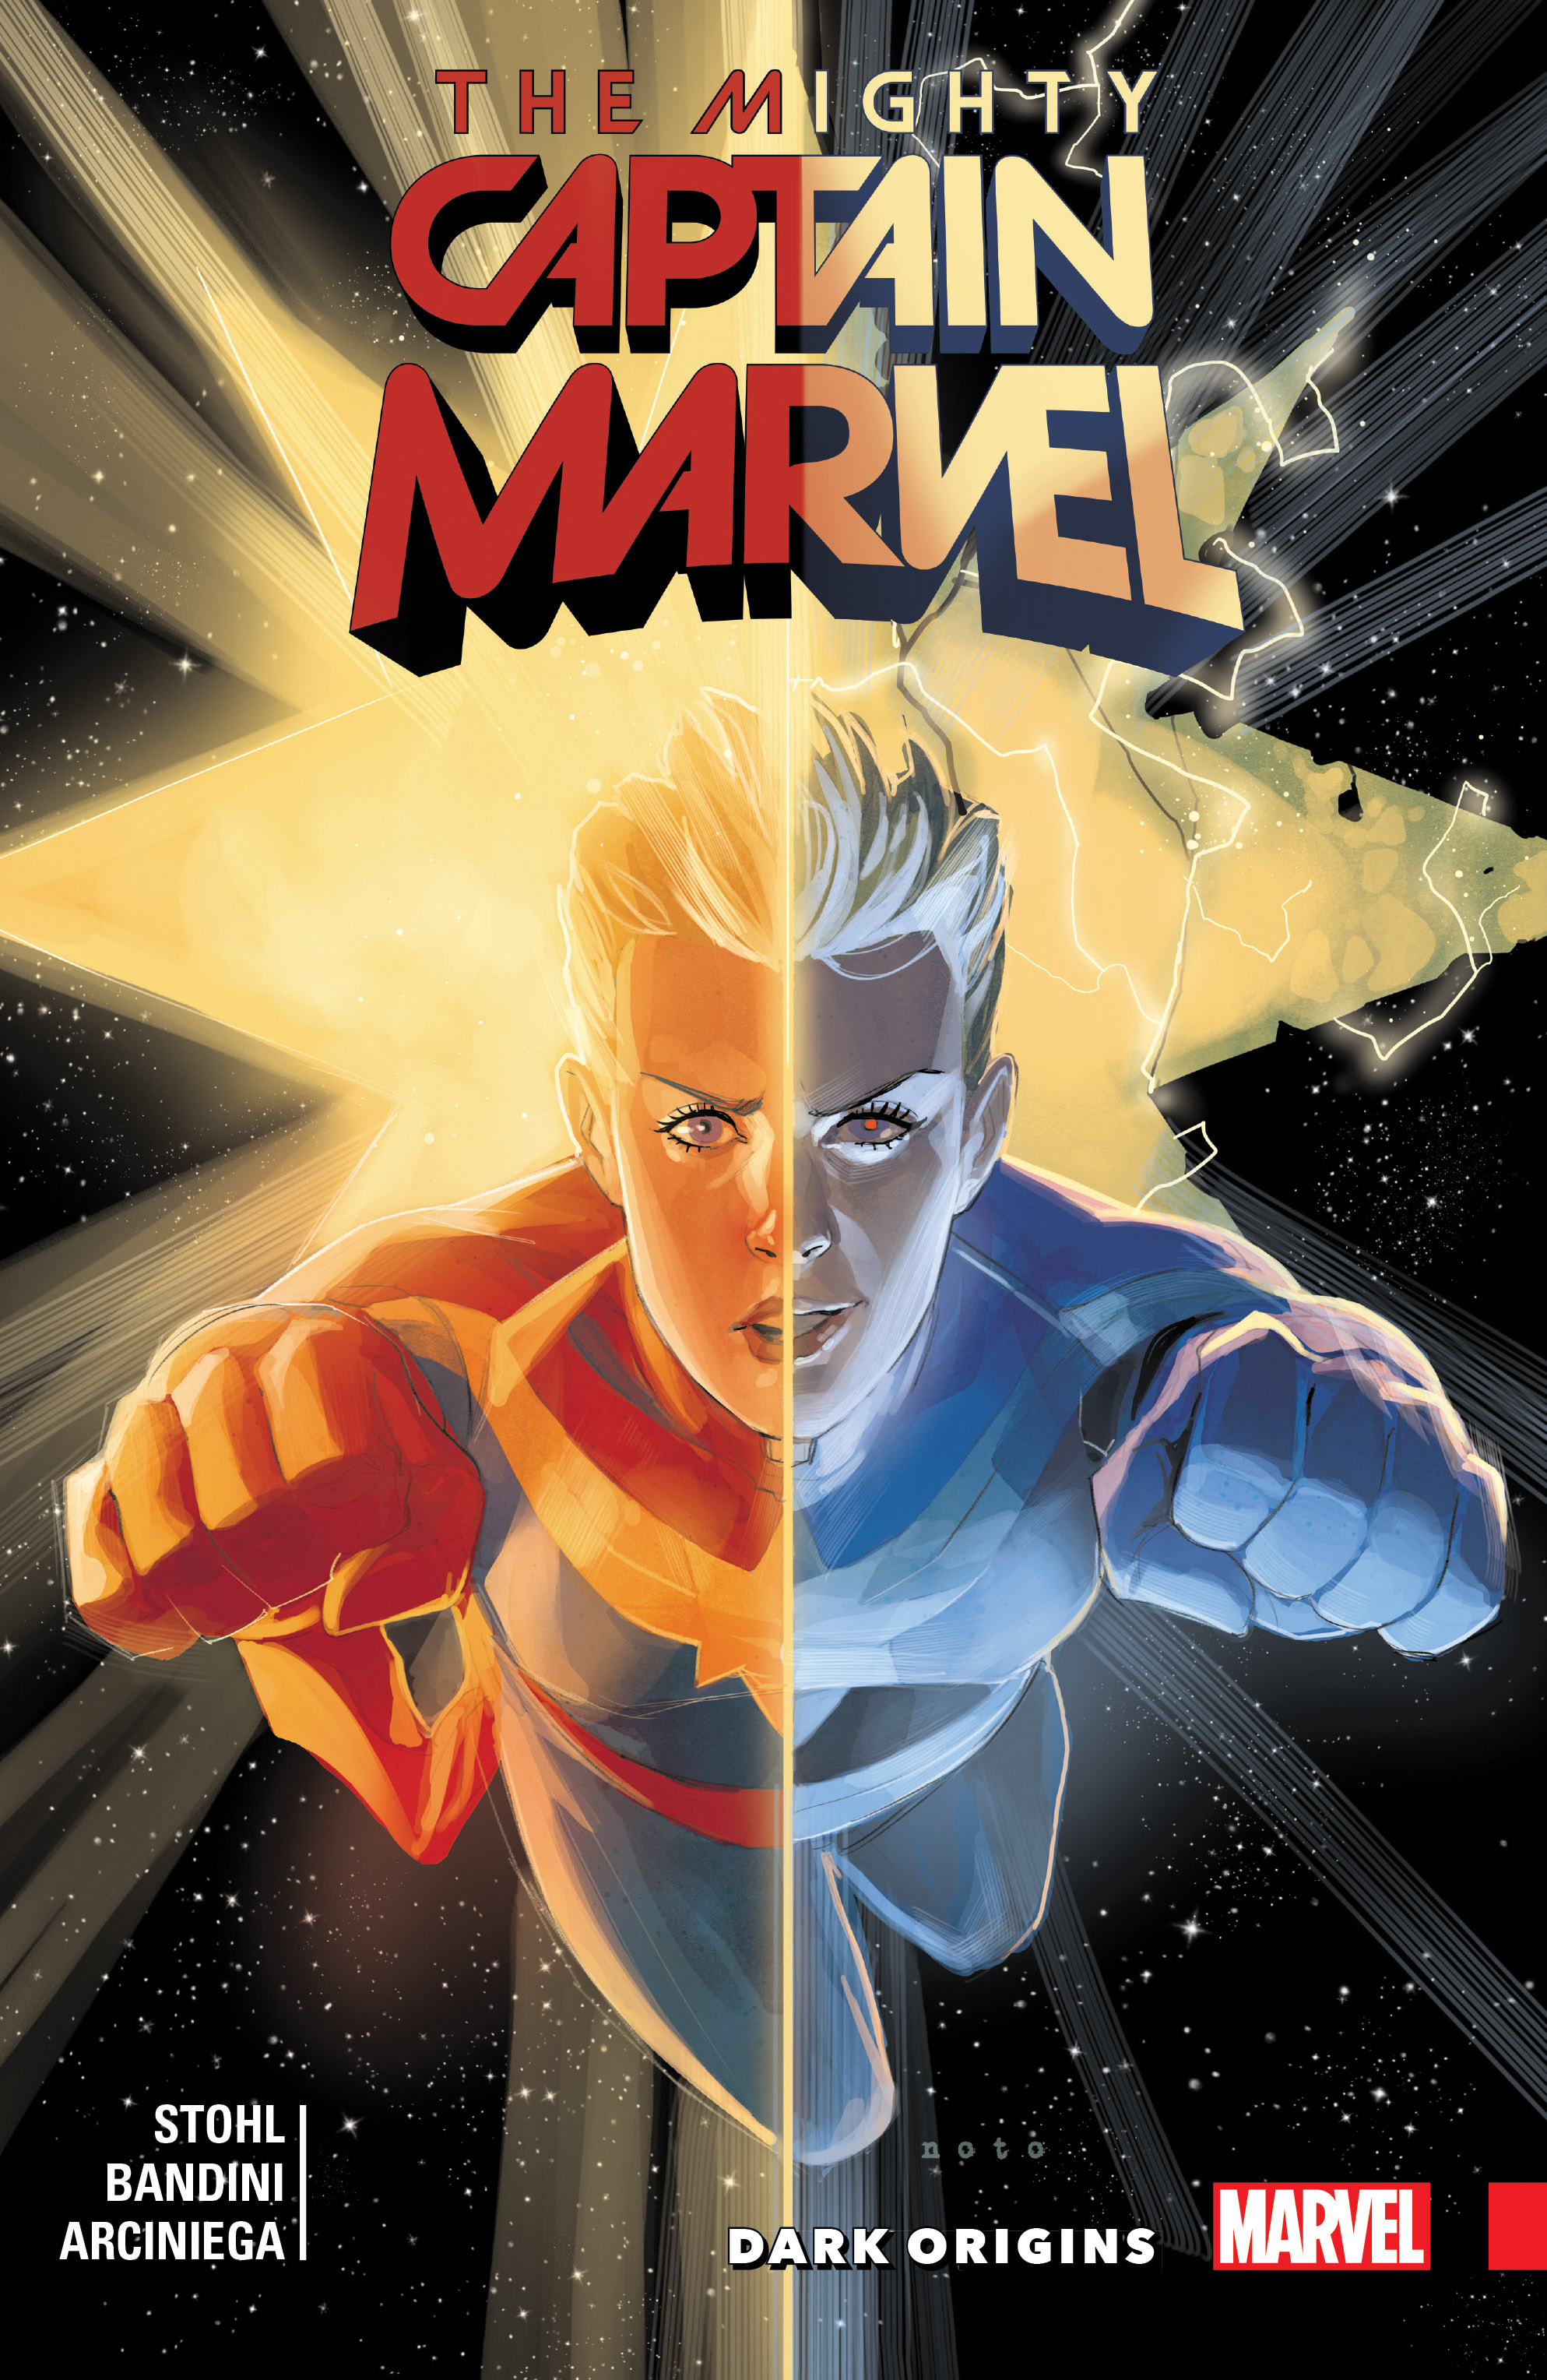 The Mighty Captain Marvel Vol. 3: Dark Origins (Trade Paperback)